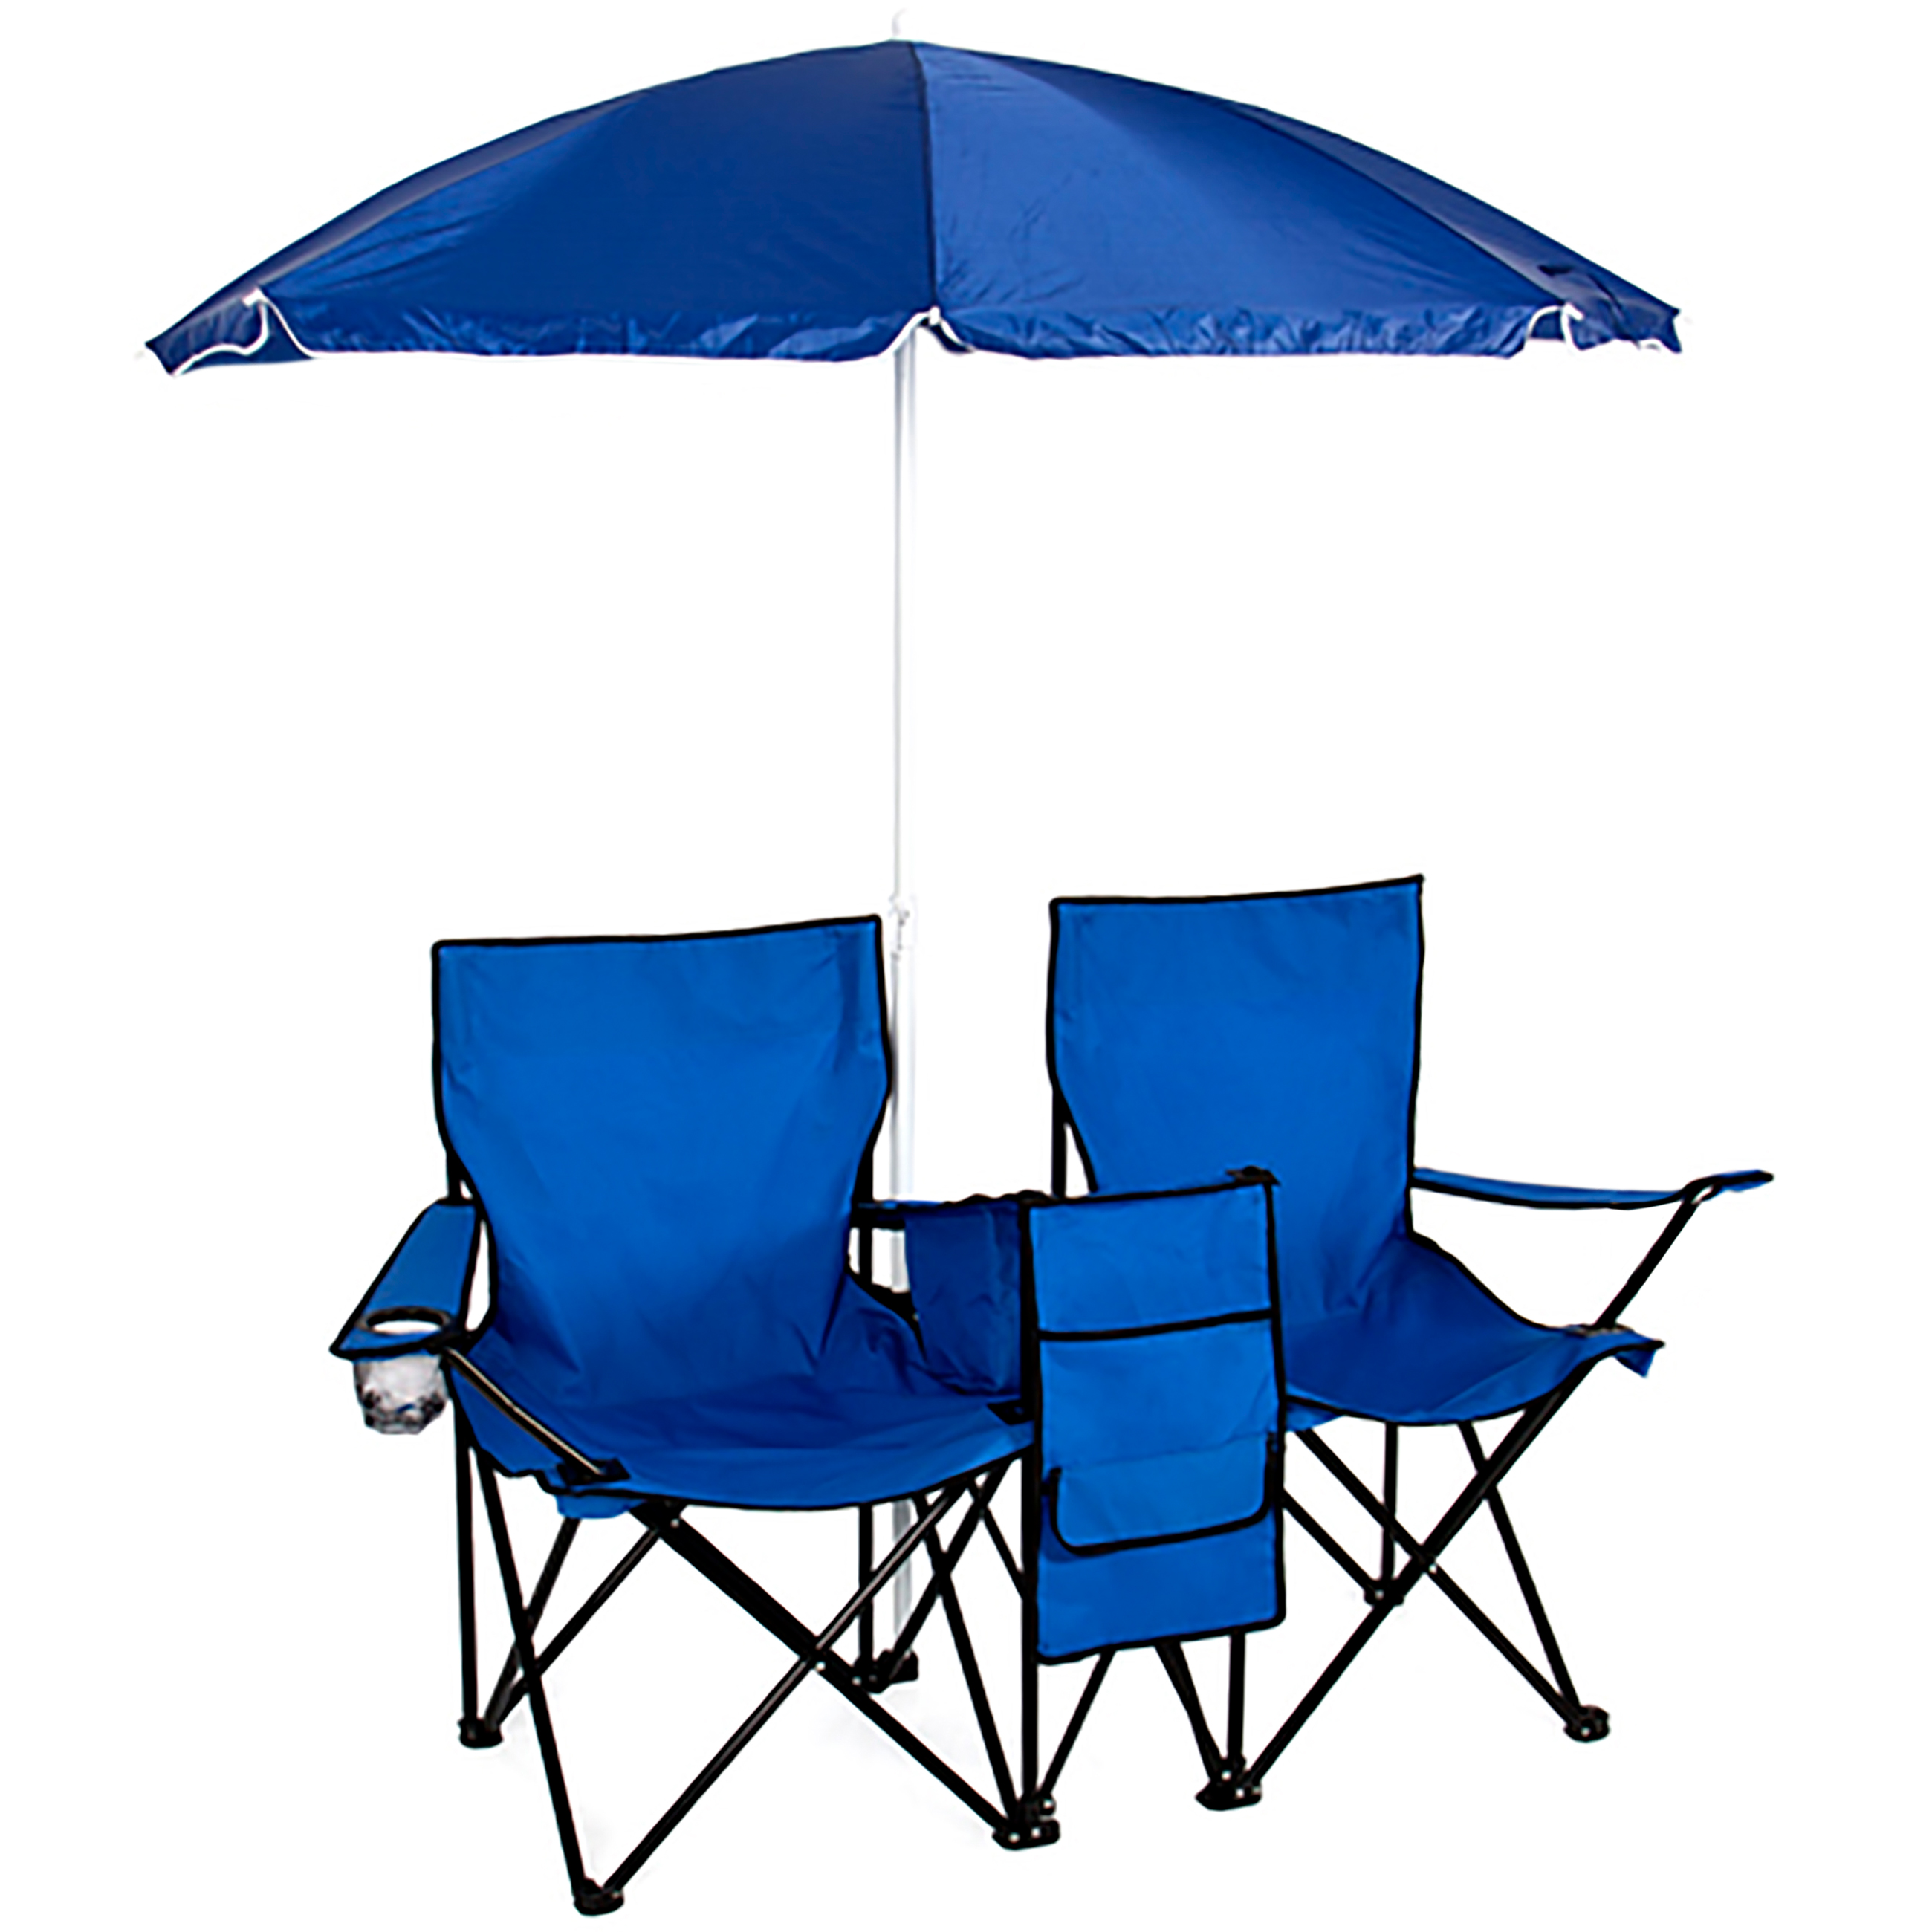 Bcp Folding Outdoor Double Chair W Removable Umbrella